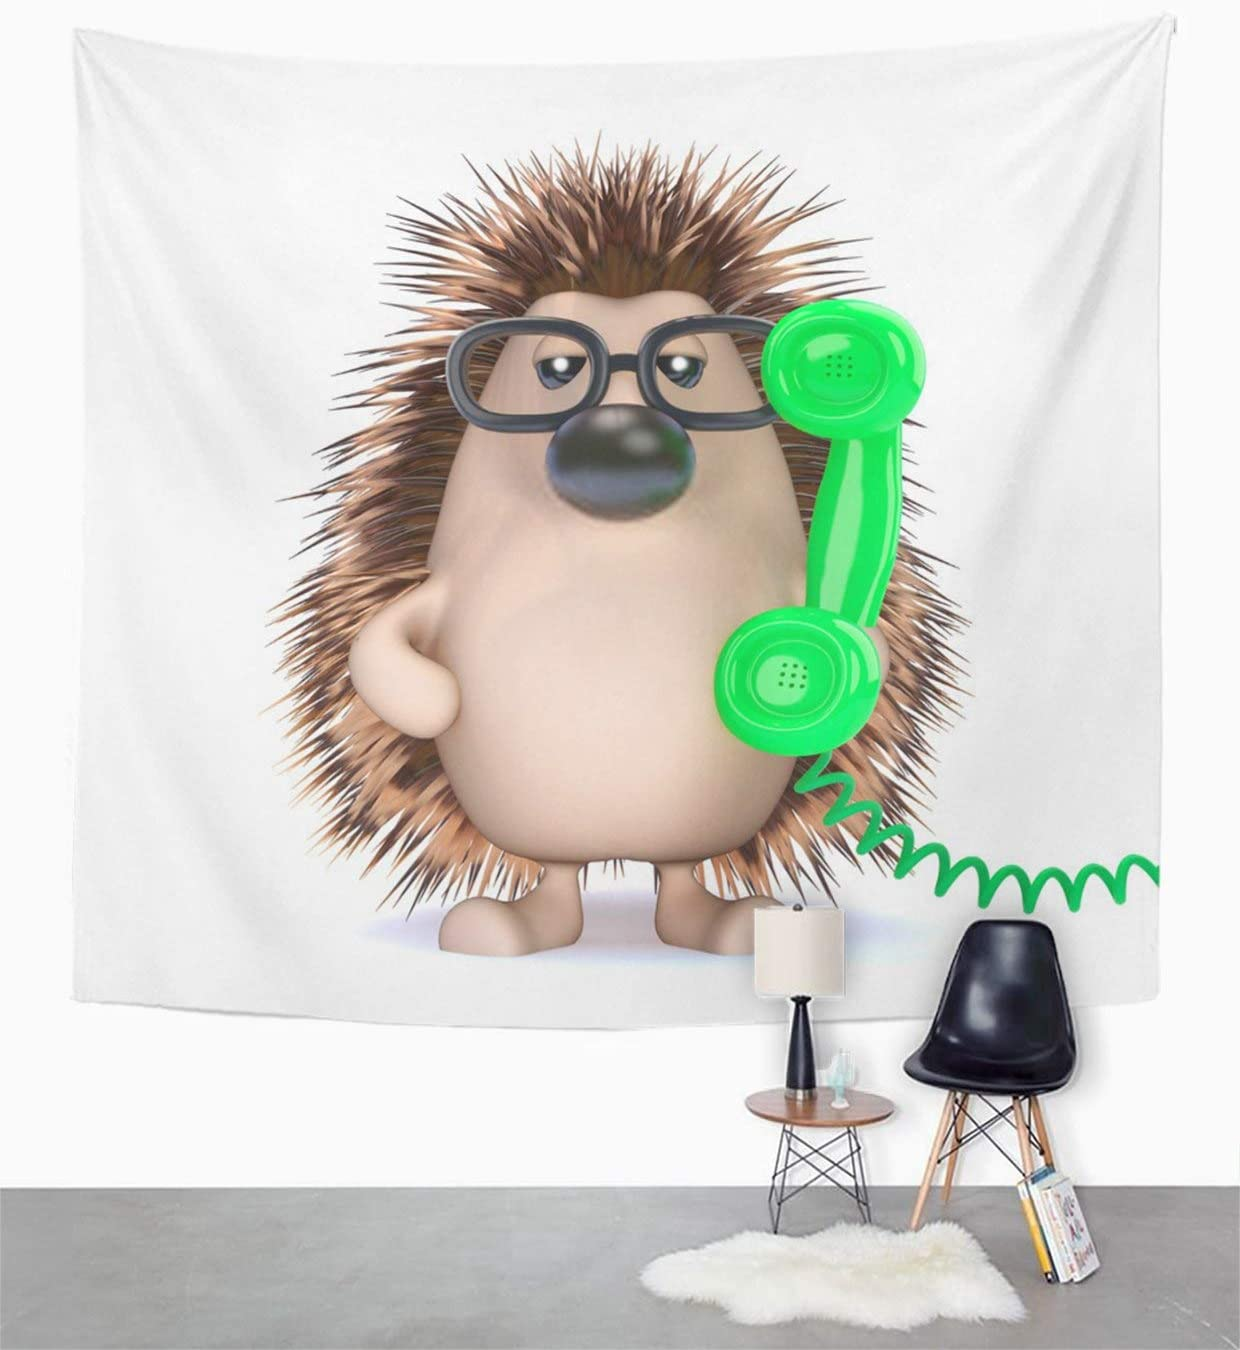 Houlor Tapestry Cute Hedgehog is The Phone Three Dimensional Wildlife Mammal Help Desk Cartoon Wall Hanging Art Print Home Polyester Decoration Apartment Bedroom Living Room Dorm Decor 50x60 Inches